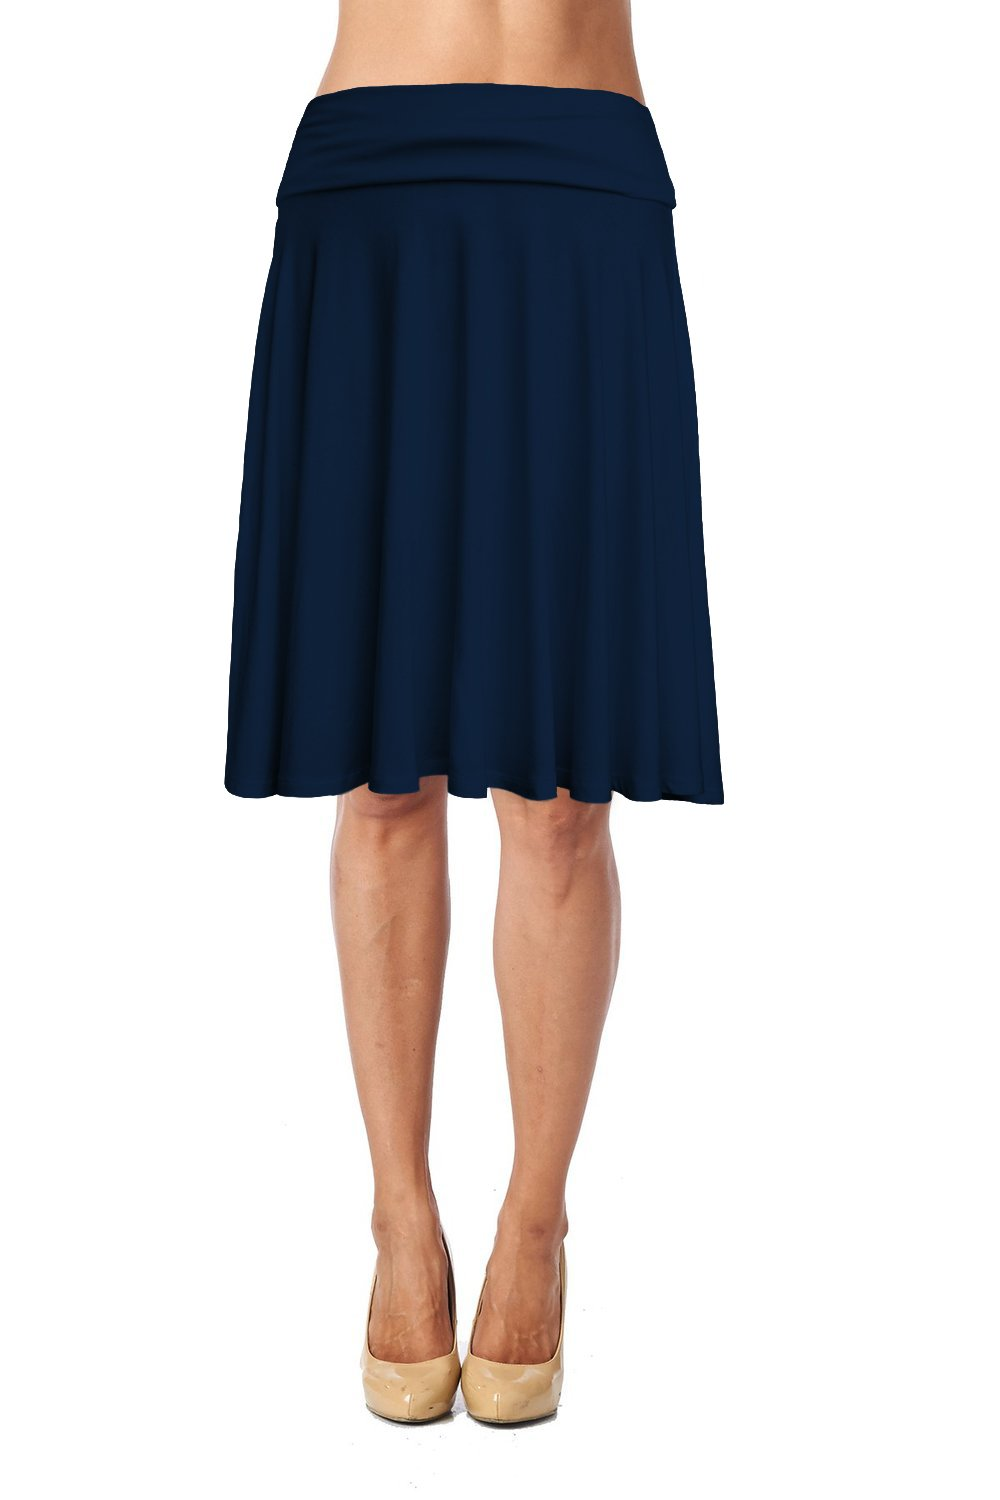 Jubilee Couture Womens Basic Soft Stretch Mid Midi Knee Length Flare Flowy Skirt Made in USA-Navy,2X